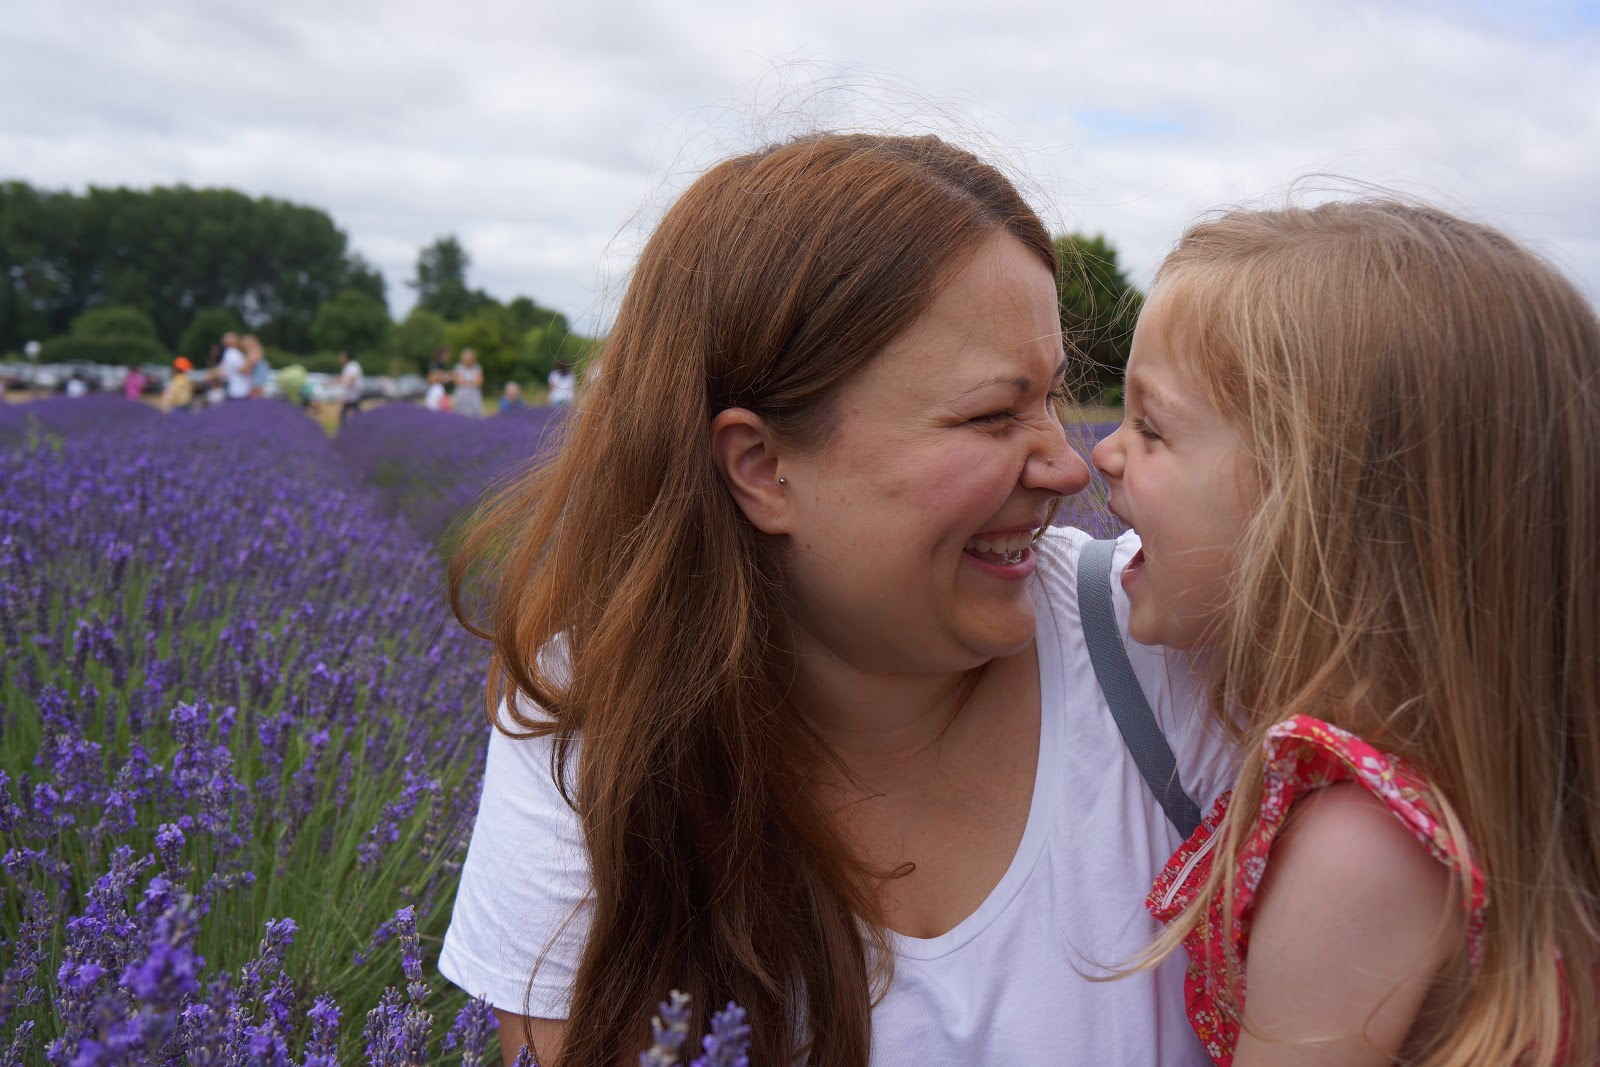 mum and daughter at a lavender field laughing